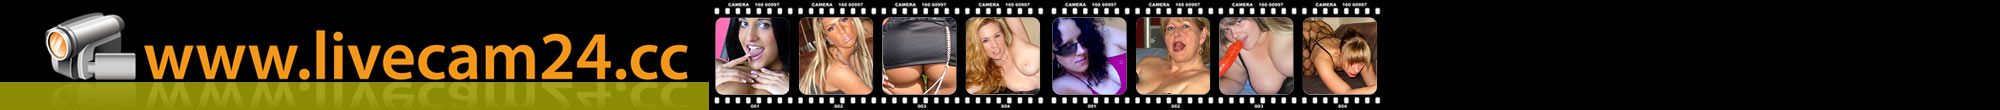 SensualChanel, 19 Jahre, BH: 70 D - brüste 75dd -  - Video Web Cams Live Sex Chat von heissen Girls